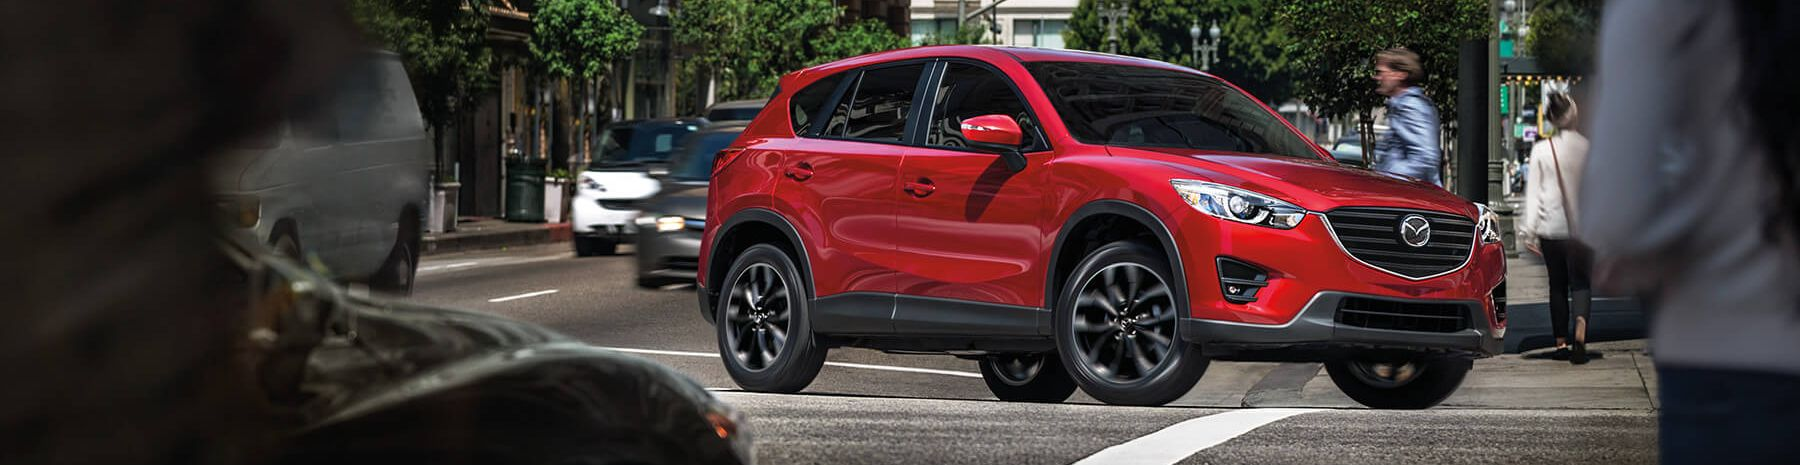 2017 Mazda Cx 5 Financing Near Augusta Ga Gerald Jones